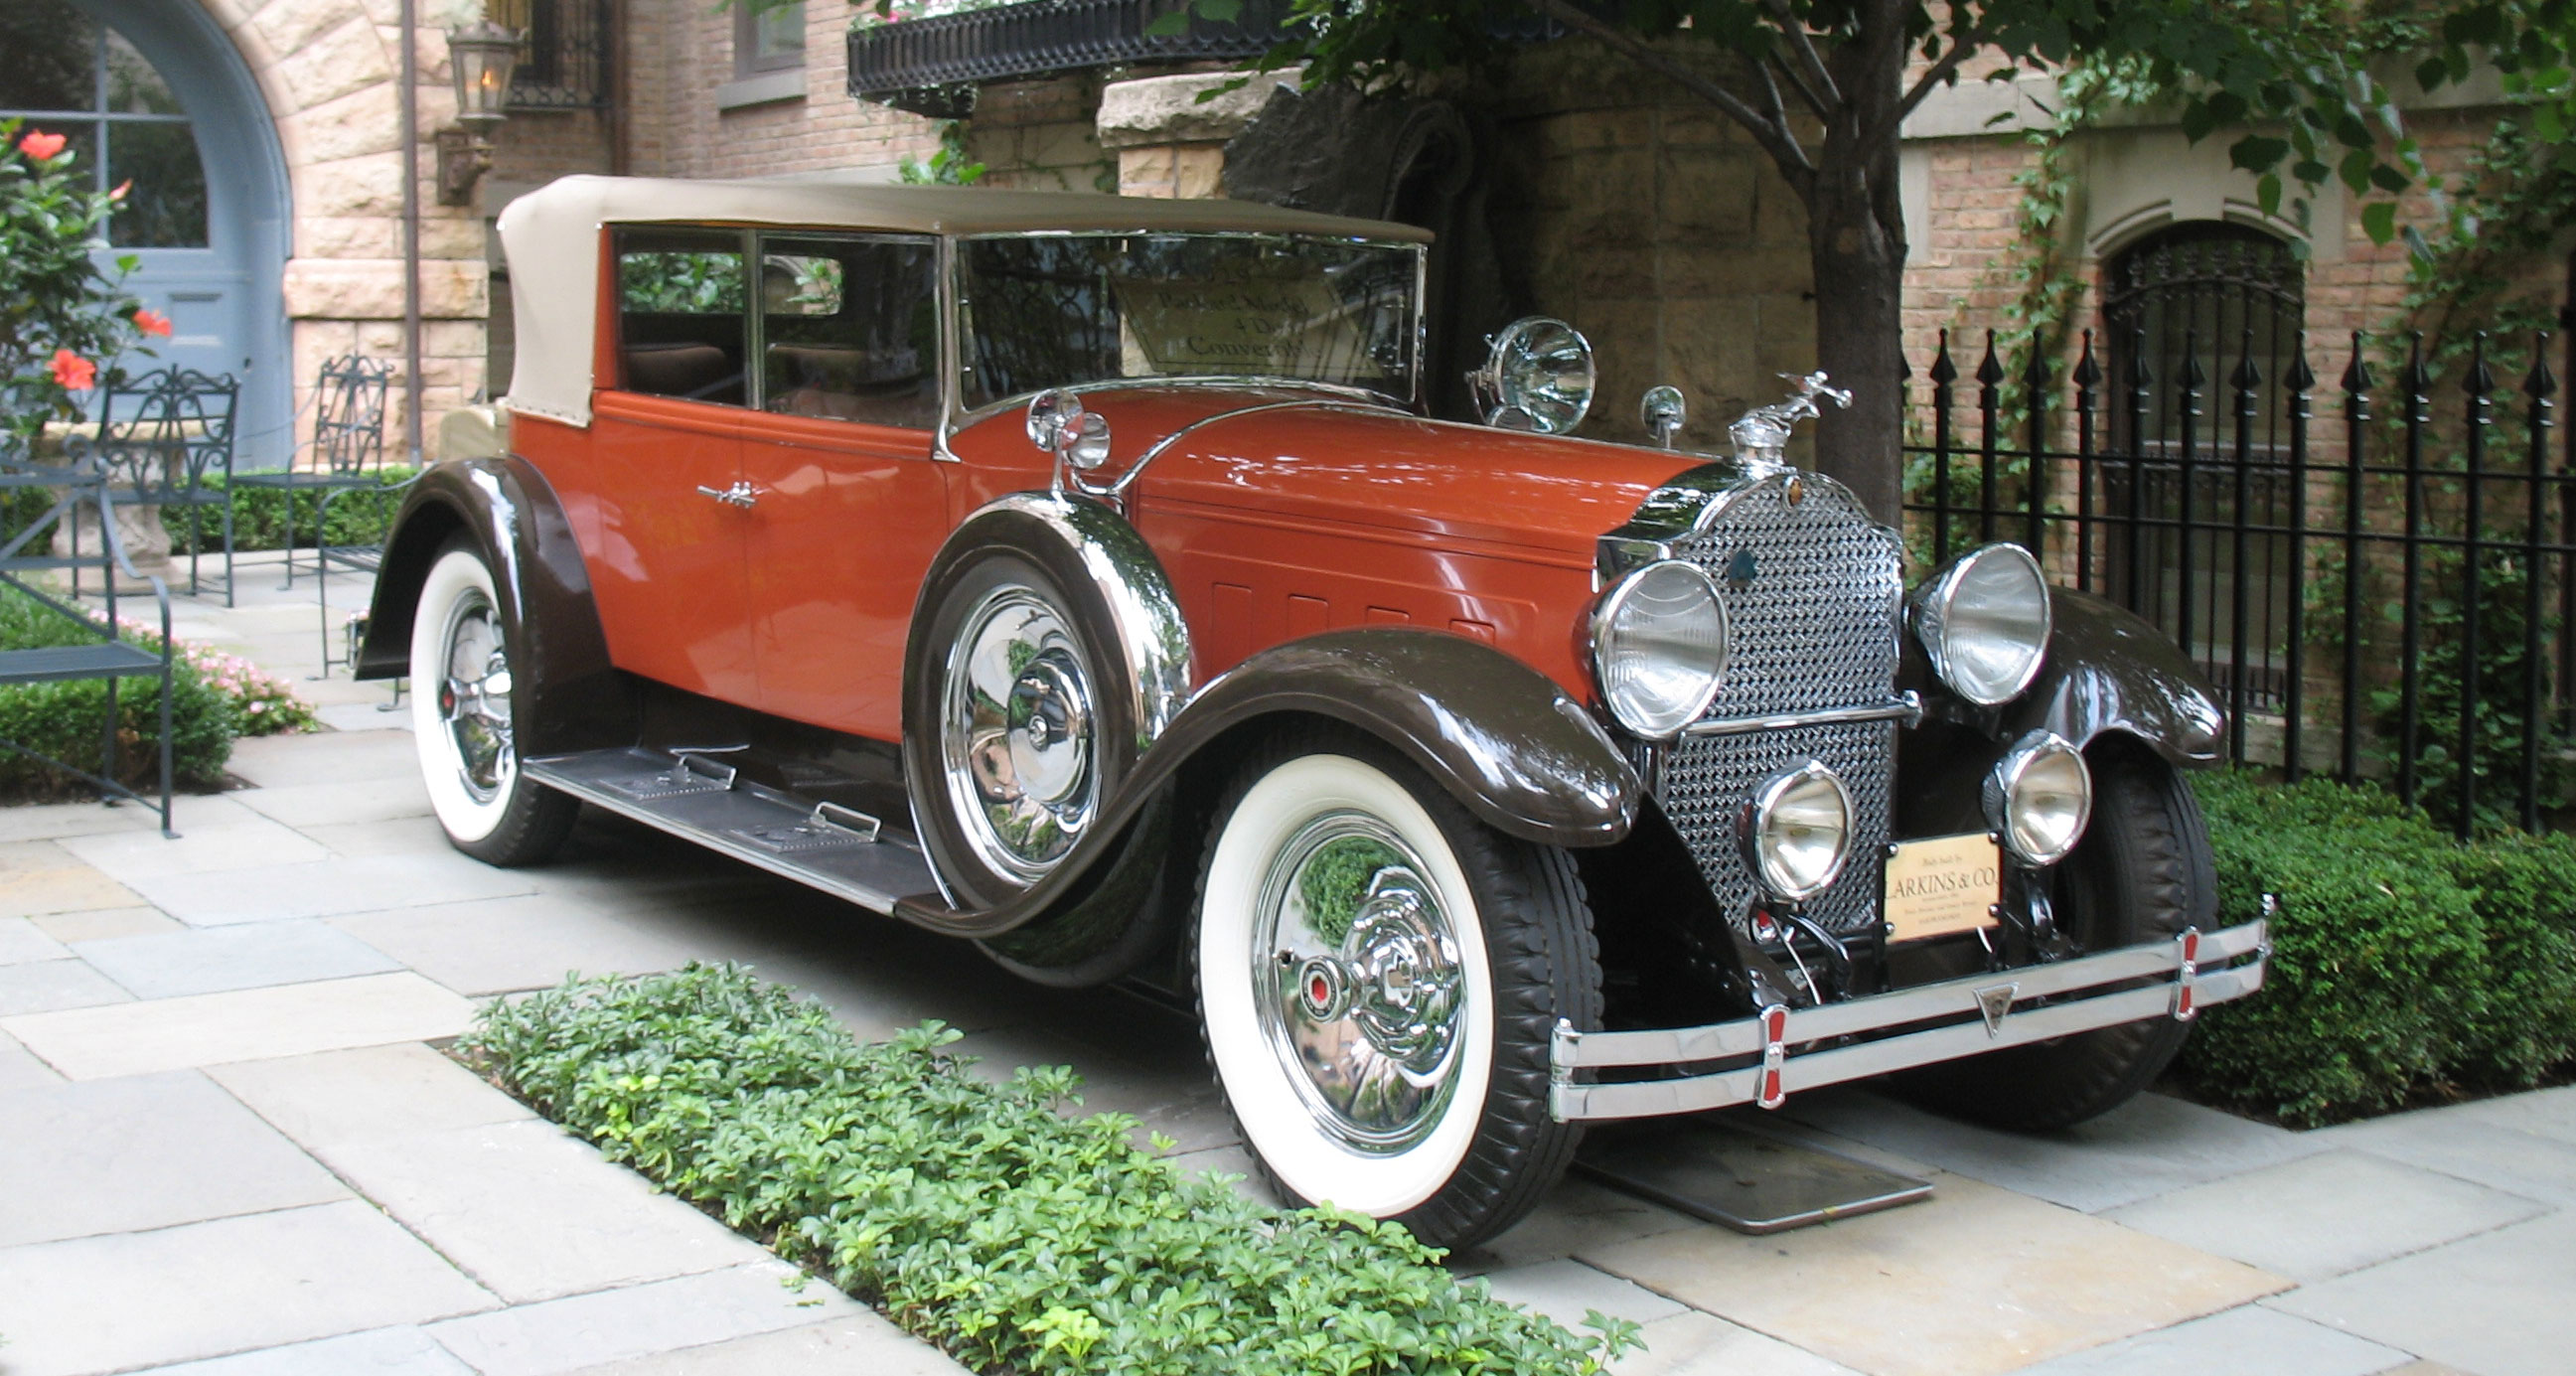 Cars We Love: 1929 Packard 640 Custom Eight Runabout | TireBuyer.com